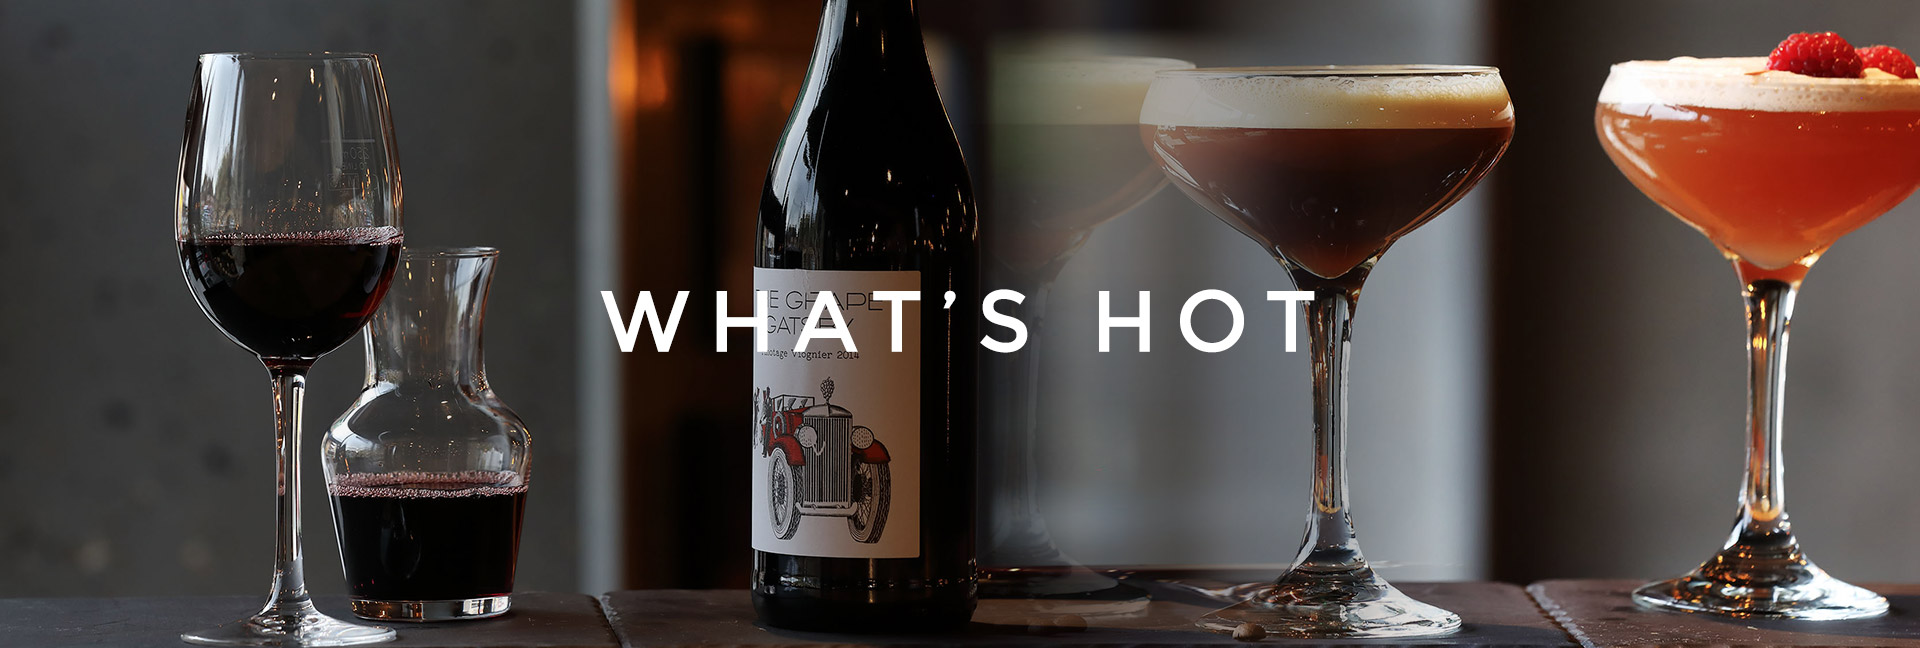 What's Hot at All Bar One New Street Station